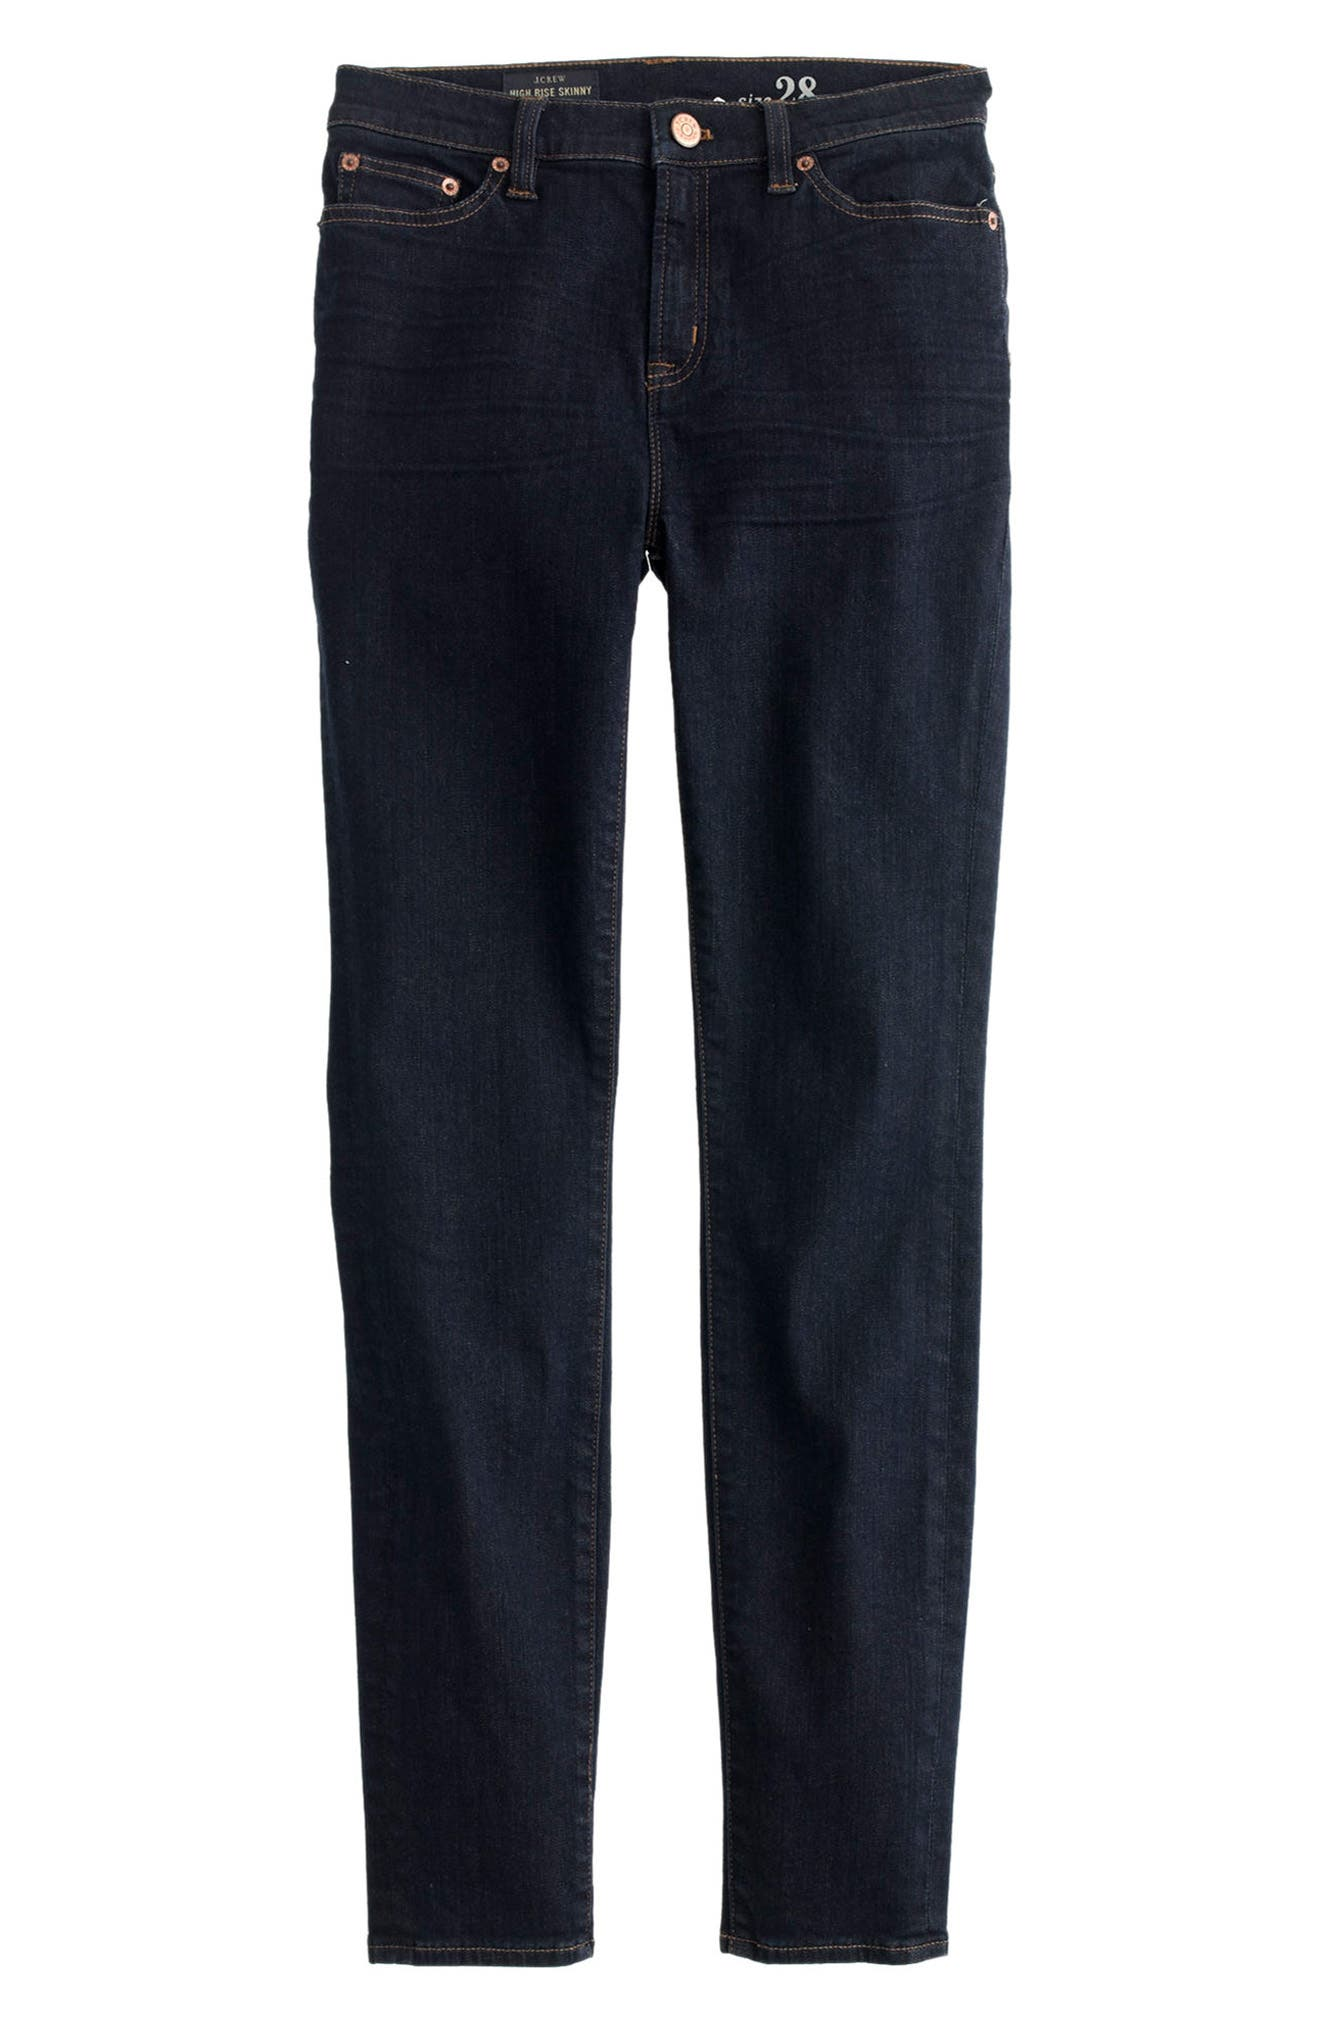 Alternate Image 3  - J.Crew Lookout High Rise Jeans (Resin) (Regular & Petite)